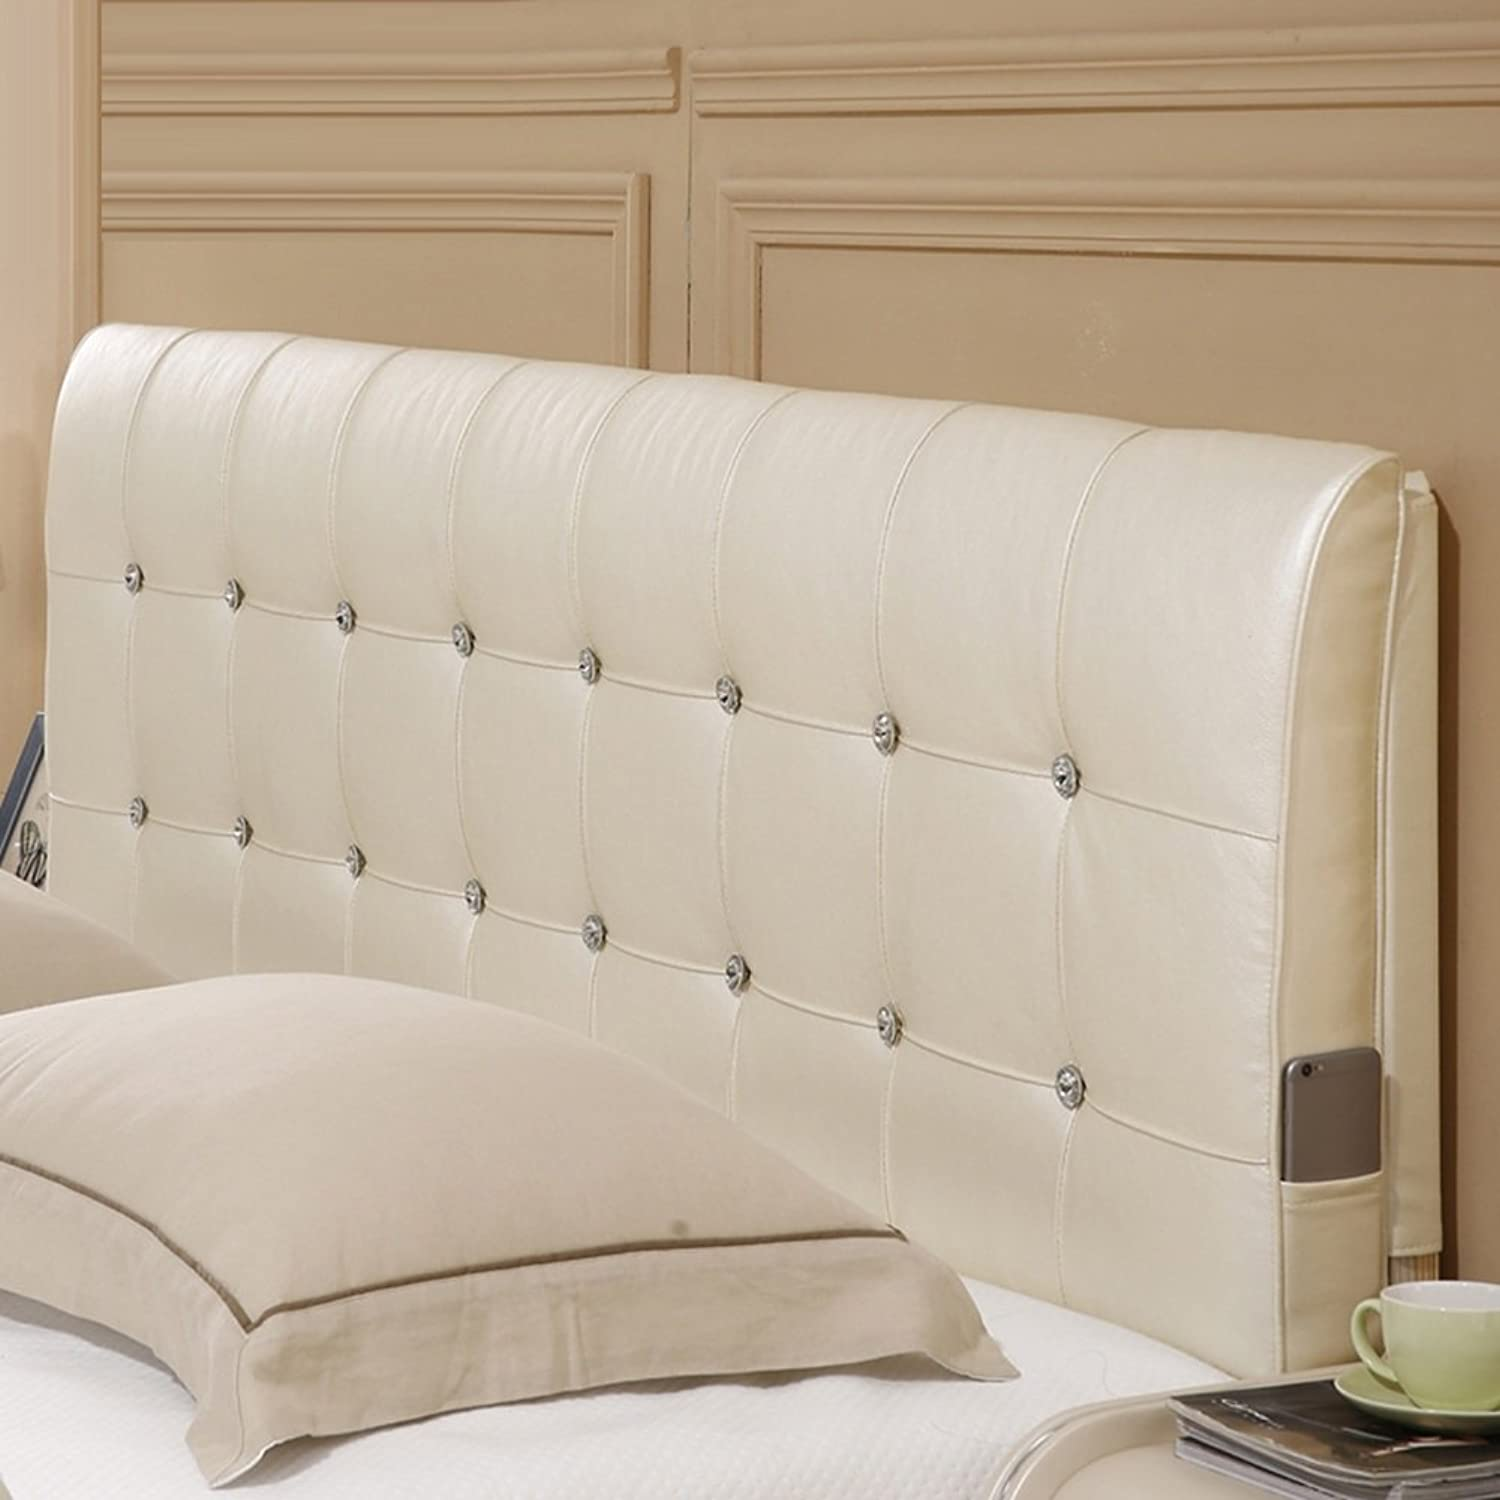 WENZHE Upholstered Fabric Headboard Bedside Cushion Pads Cover Bed Wedges Backrest Waist Pad Soft Case Double Bed Multifunction Big Back, There Is Headboard   No Headboard, 2 Styles, 6 Sizes ( color   2 -NO headboard , Size   120CM )